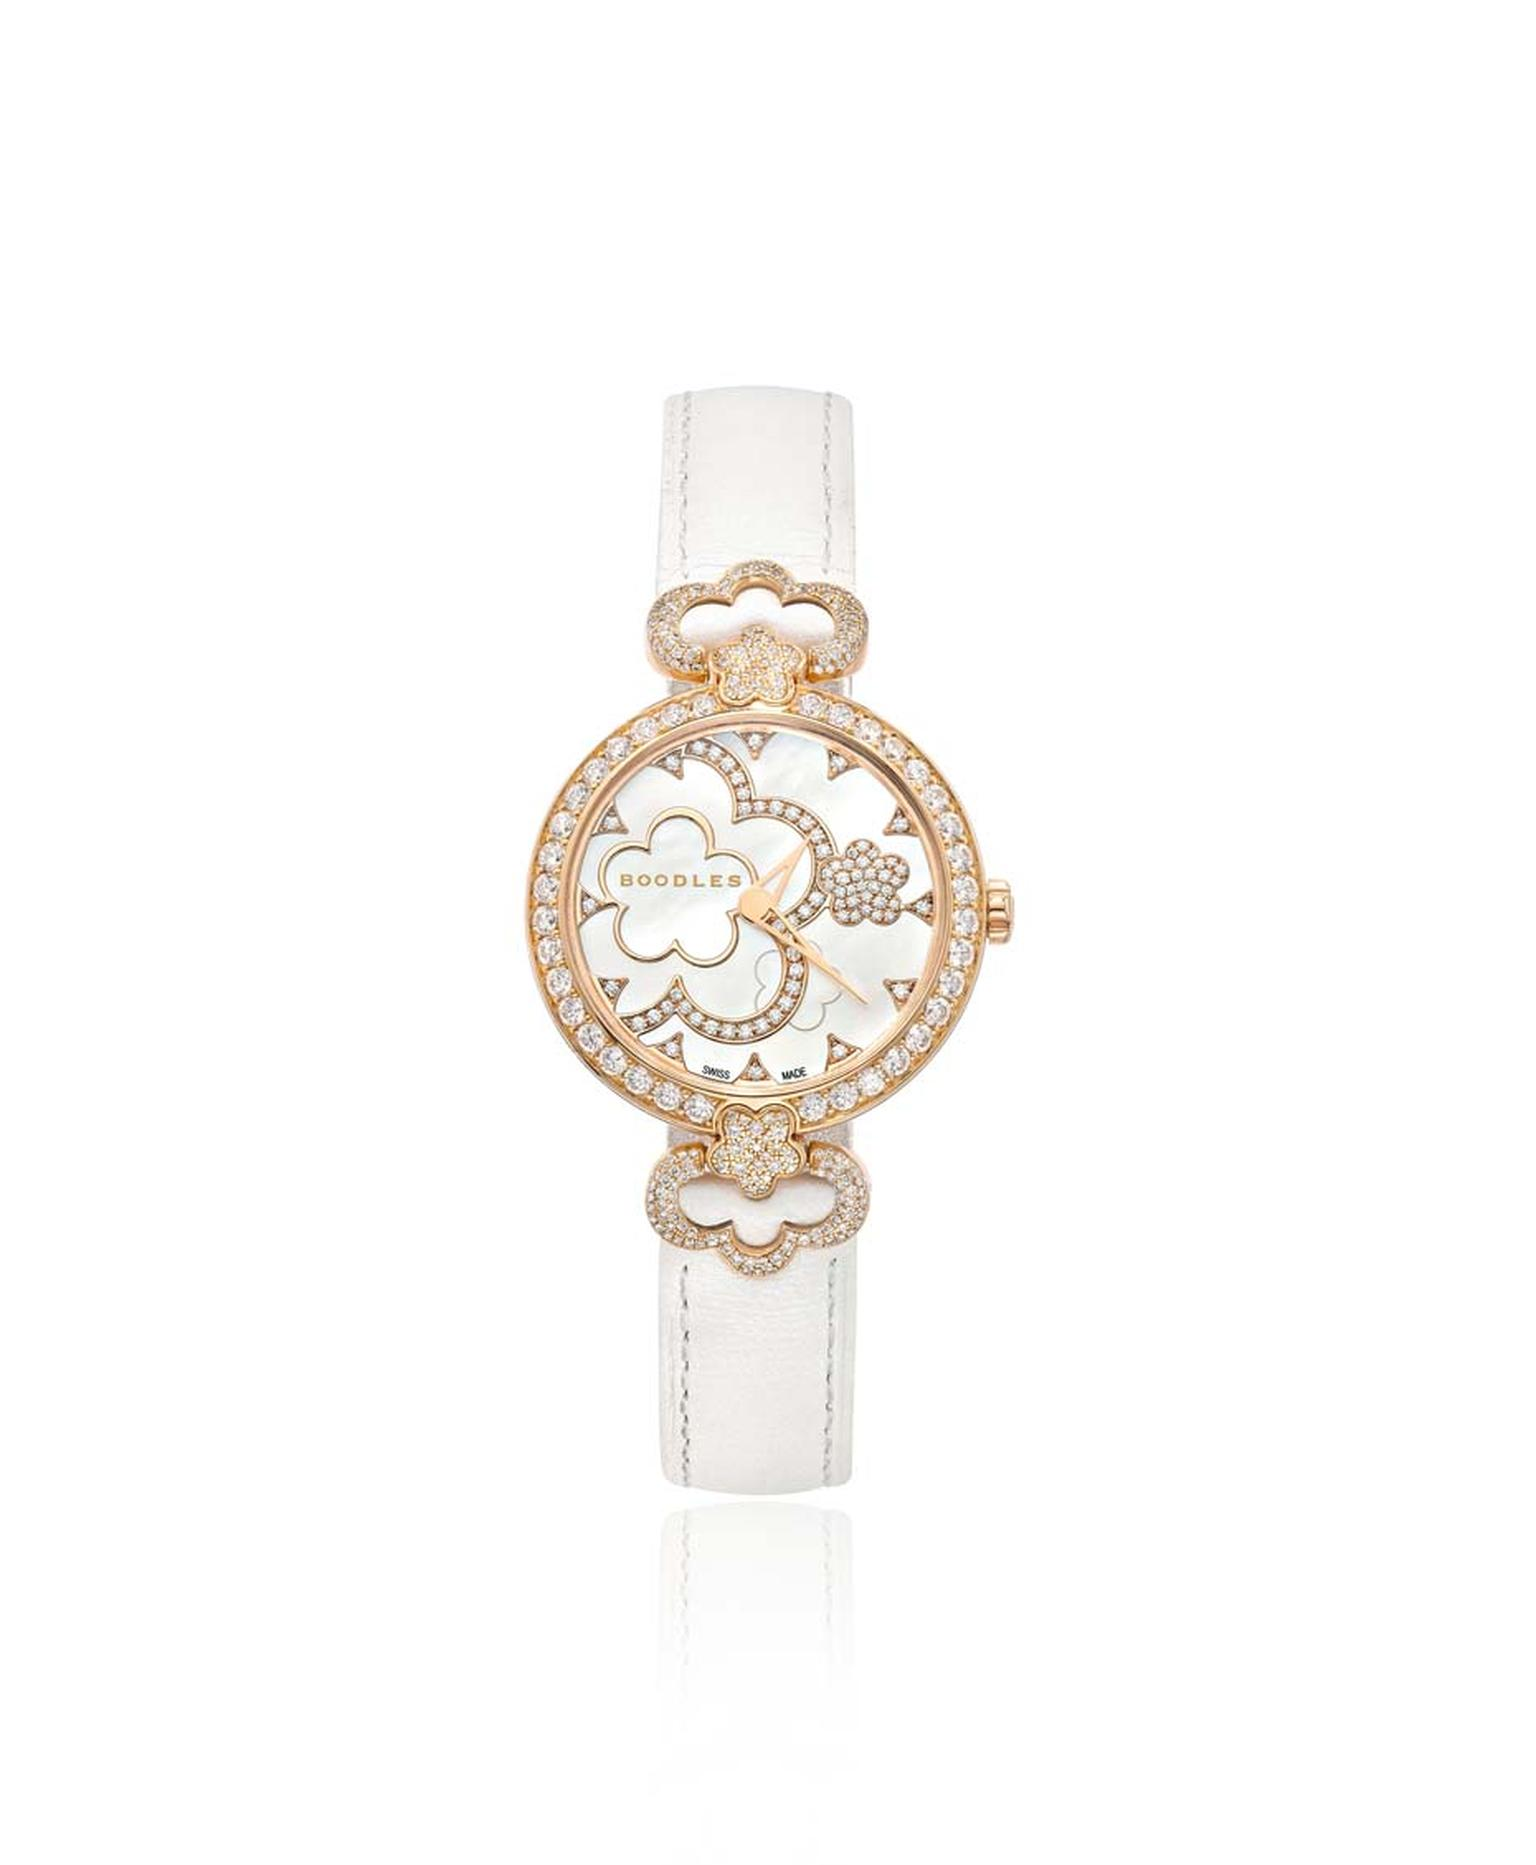 Boodles Blossom rose gold watch